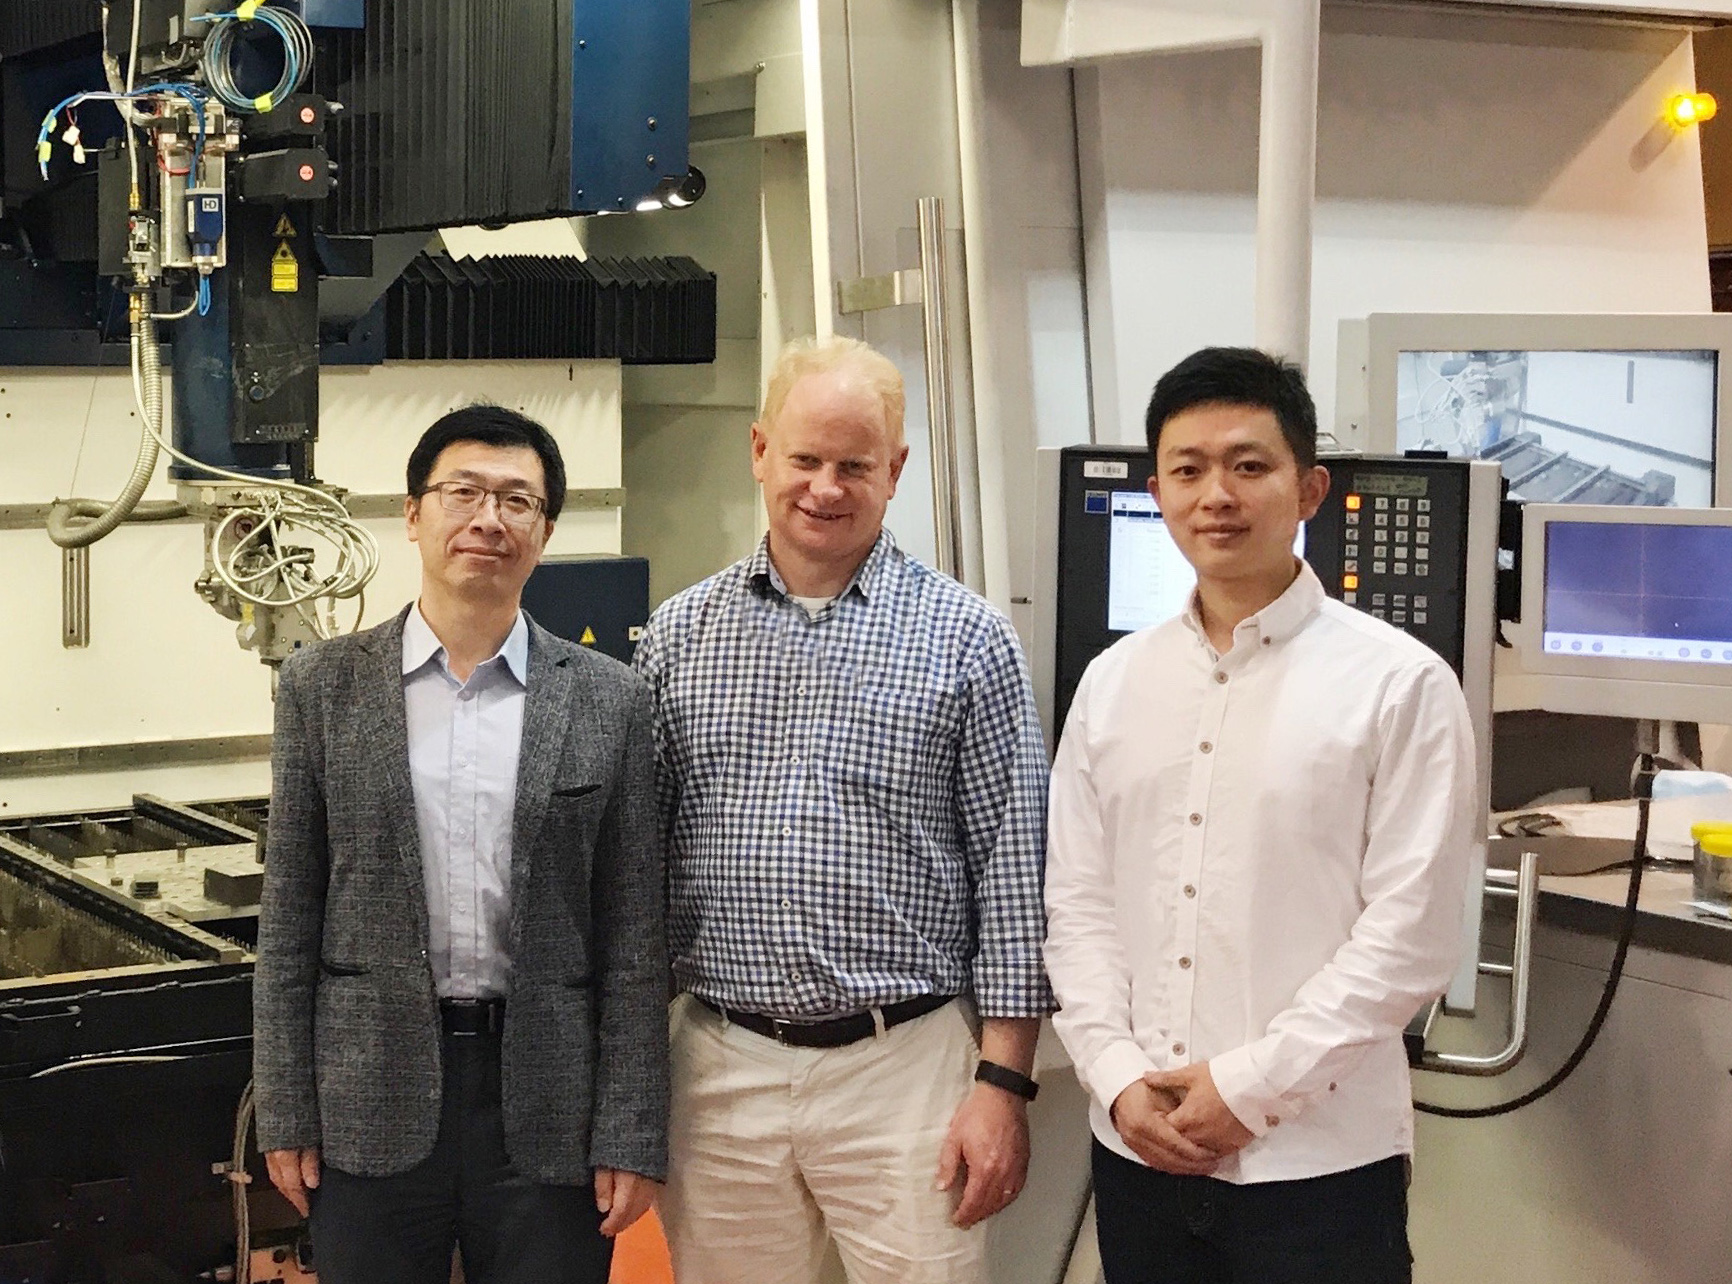 RMIT researchers involved in the multi-partner collaboration: Dr Dong Qiu, Professor Mark Easton and Dr Duyao Zhang.